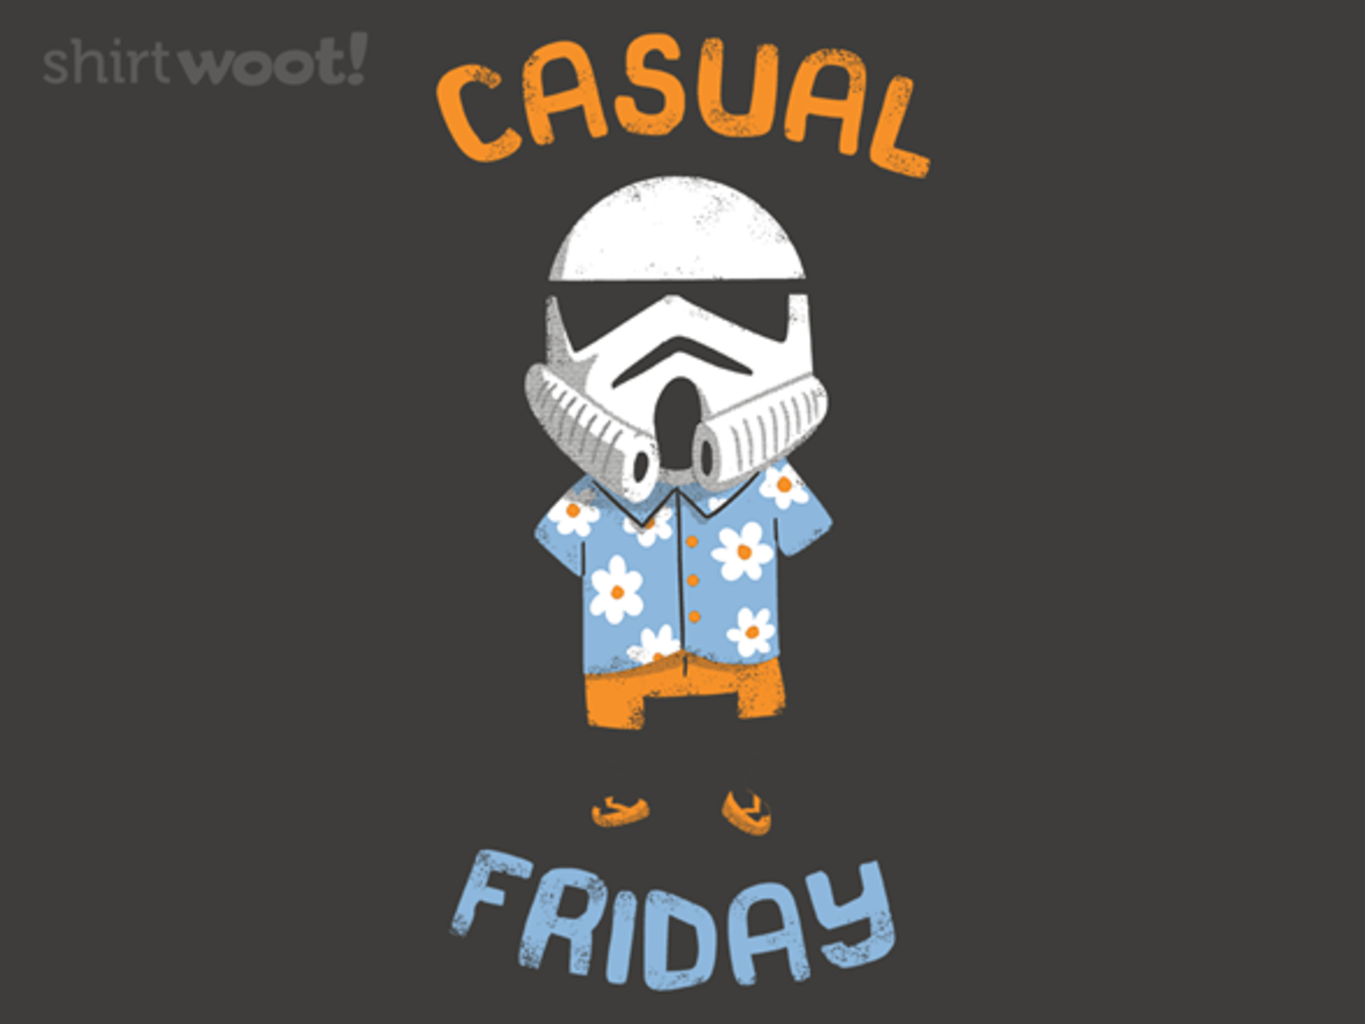 Woot!: Fridays are Casual - $8.00 + $5 standard shipping